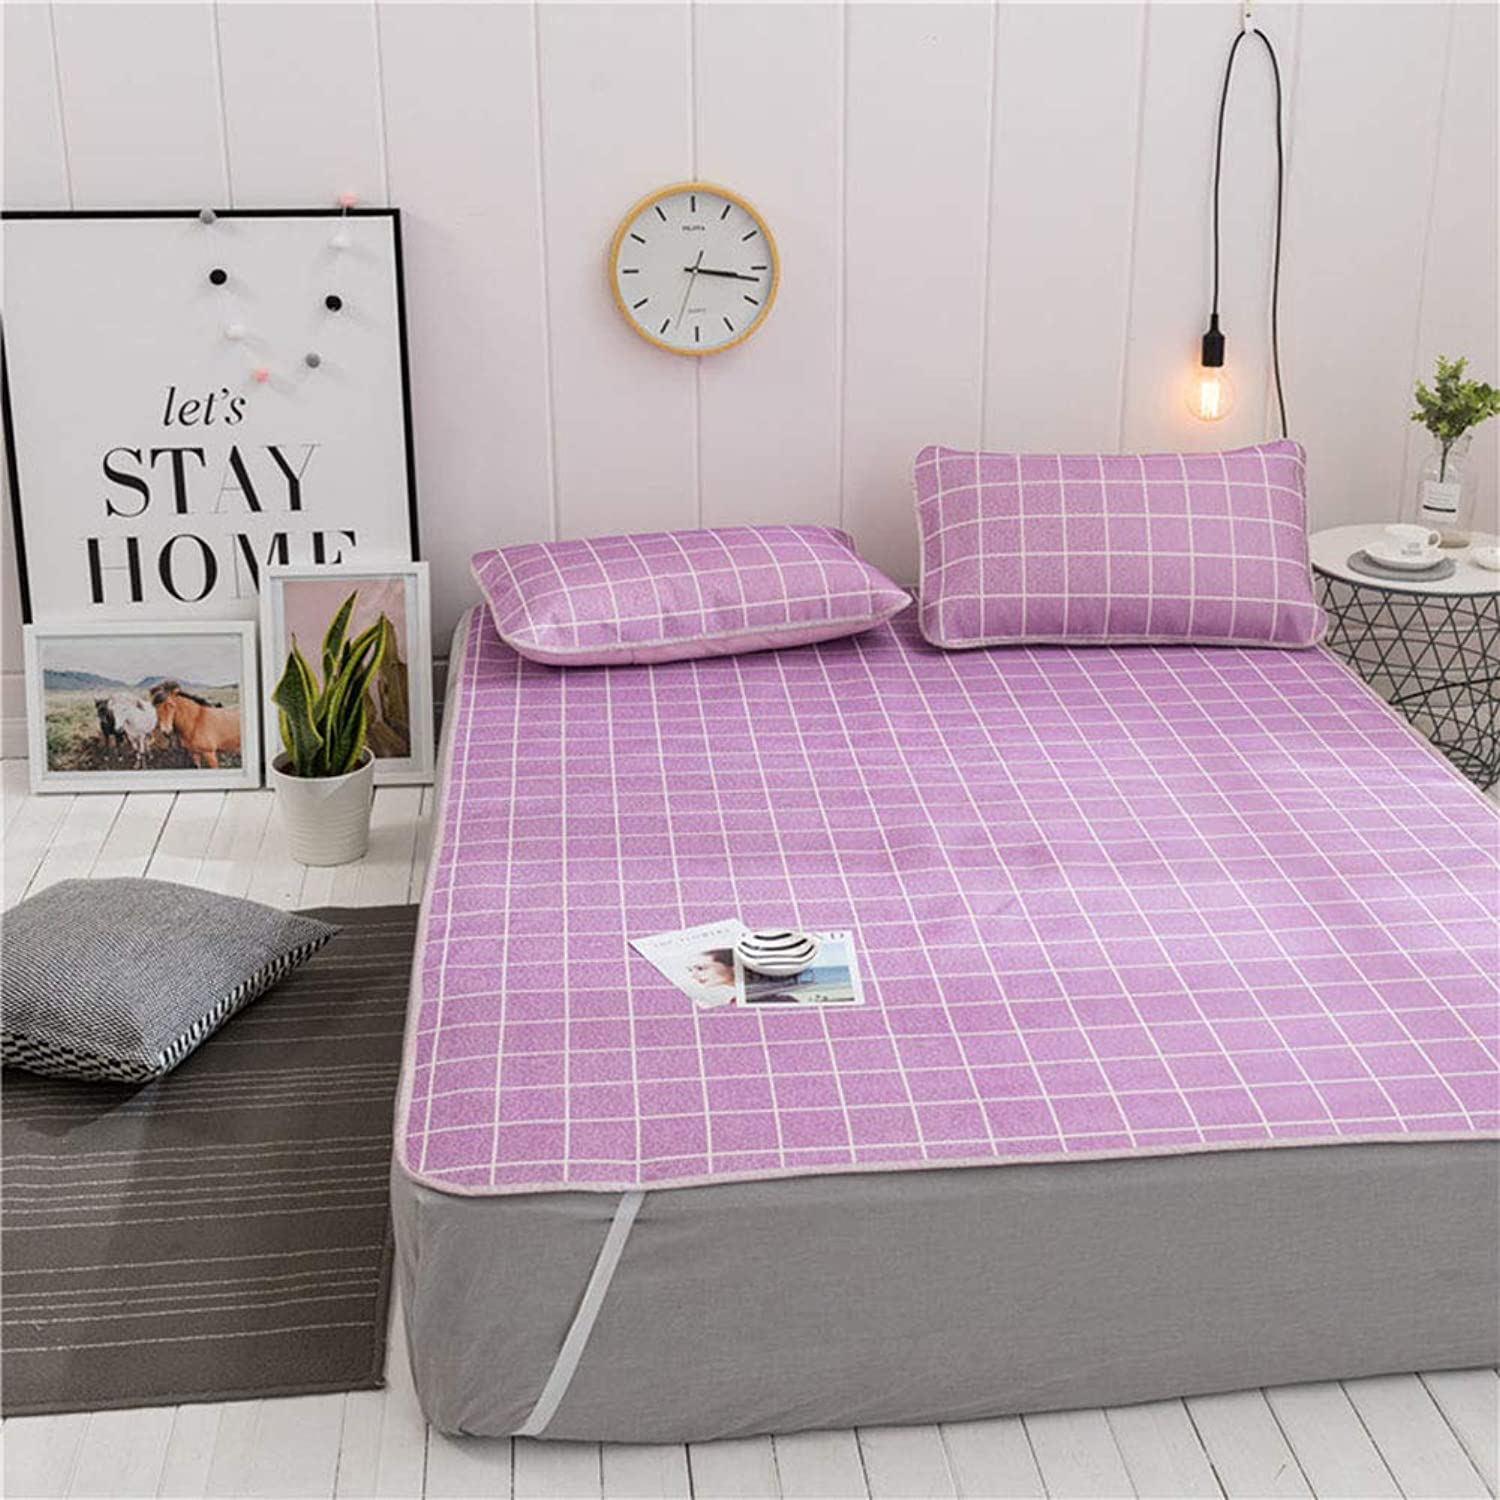 Summer Mattress, Three-Piece Set, No Printed Summer Cool Ice Silk Striped Lattice Single Bed Cooling Student Sleeping Pad, Suitable for Home, Dormitory, Gift Purple 1.8X2m